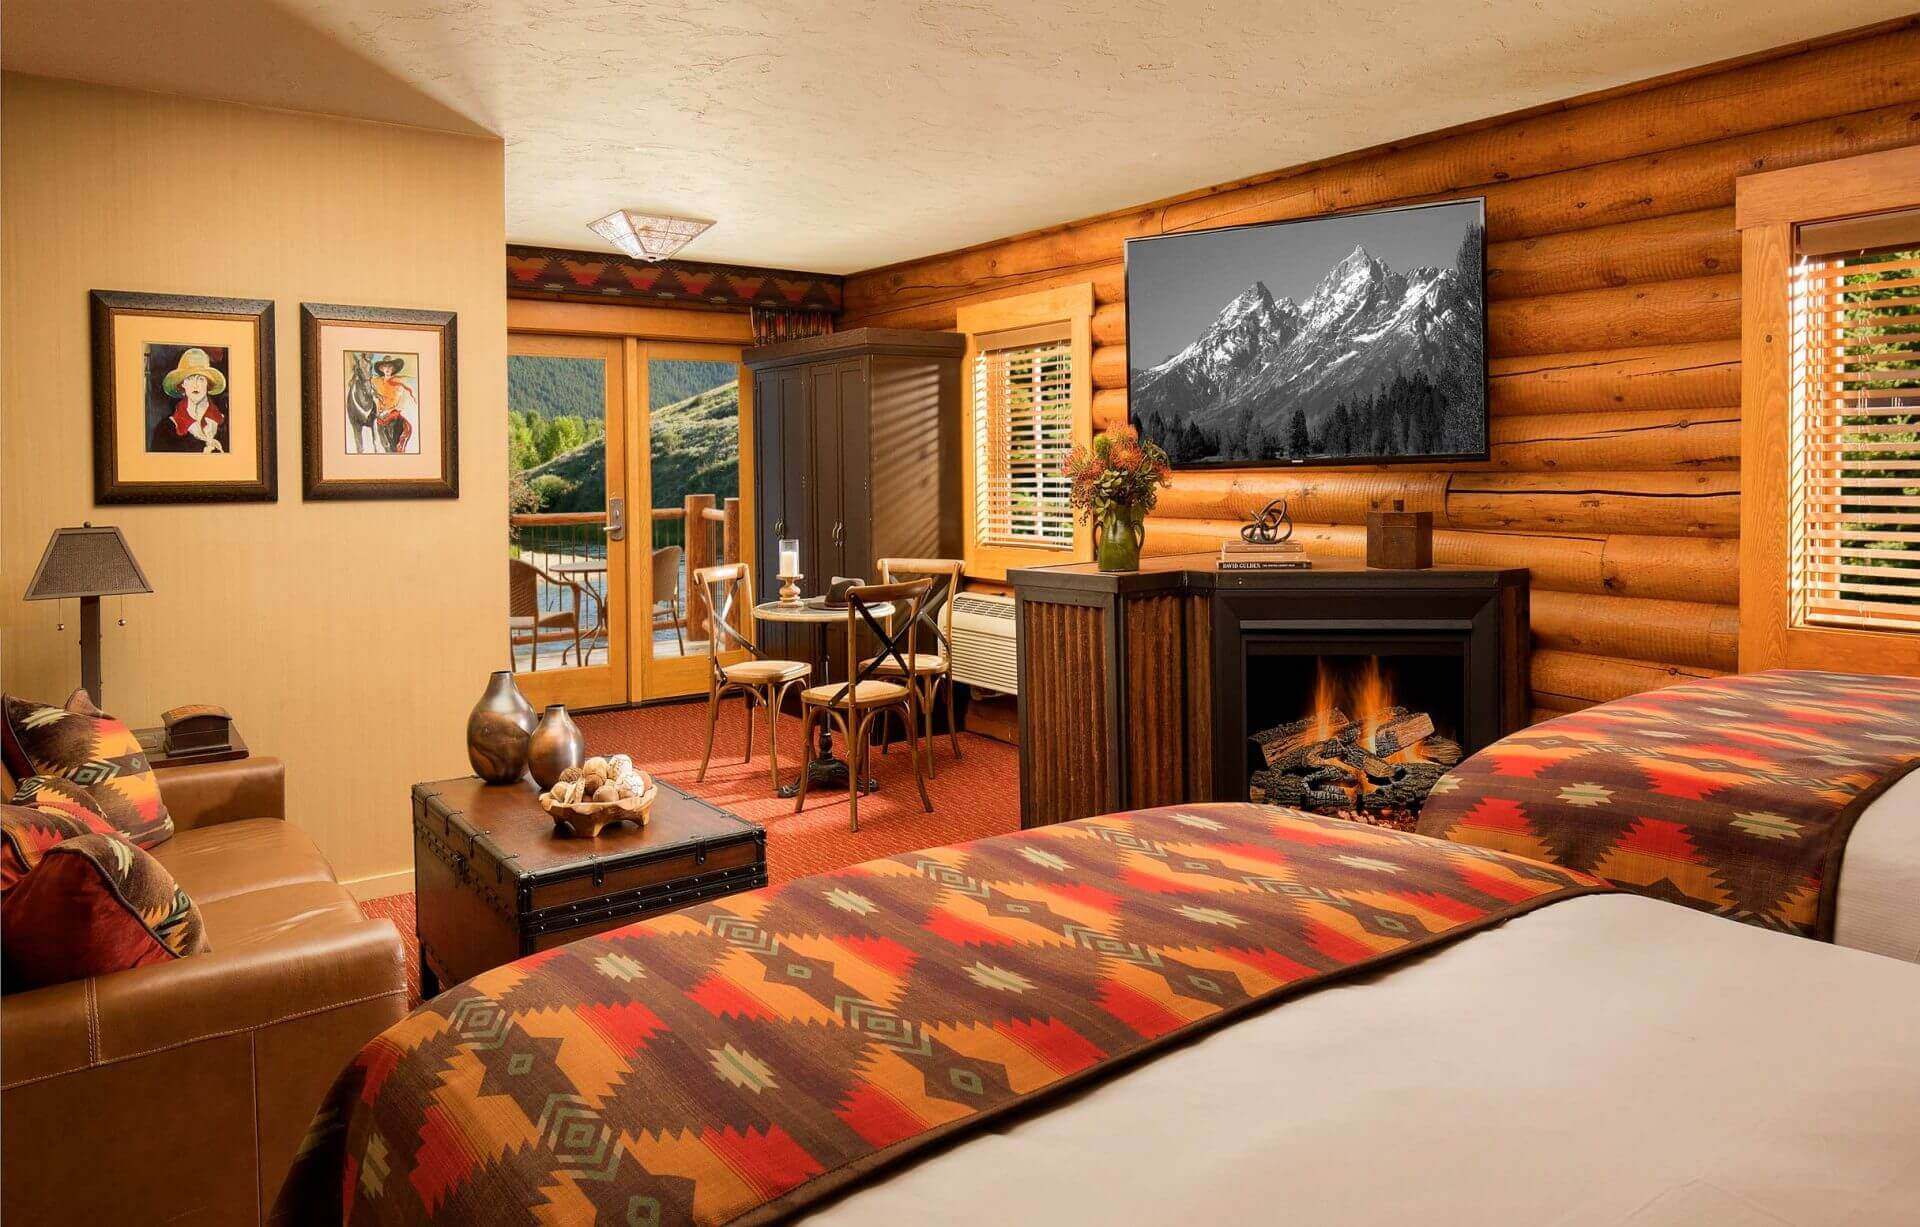 luxury hotel cabin with two queen beds and fireplace